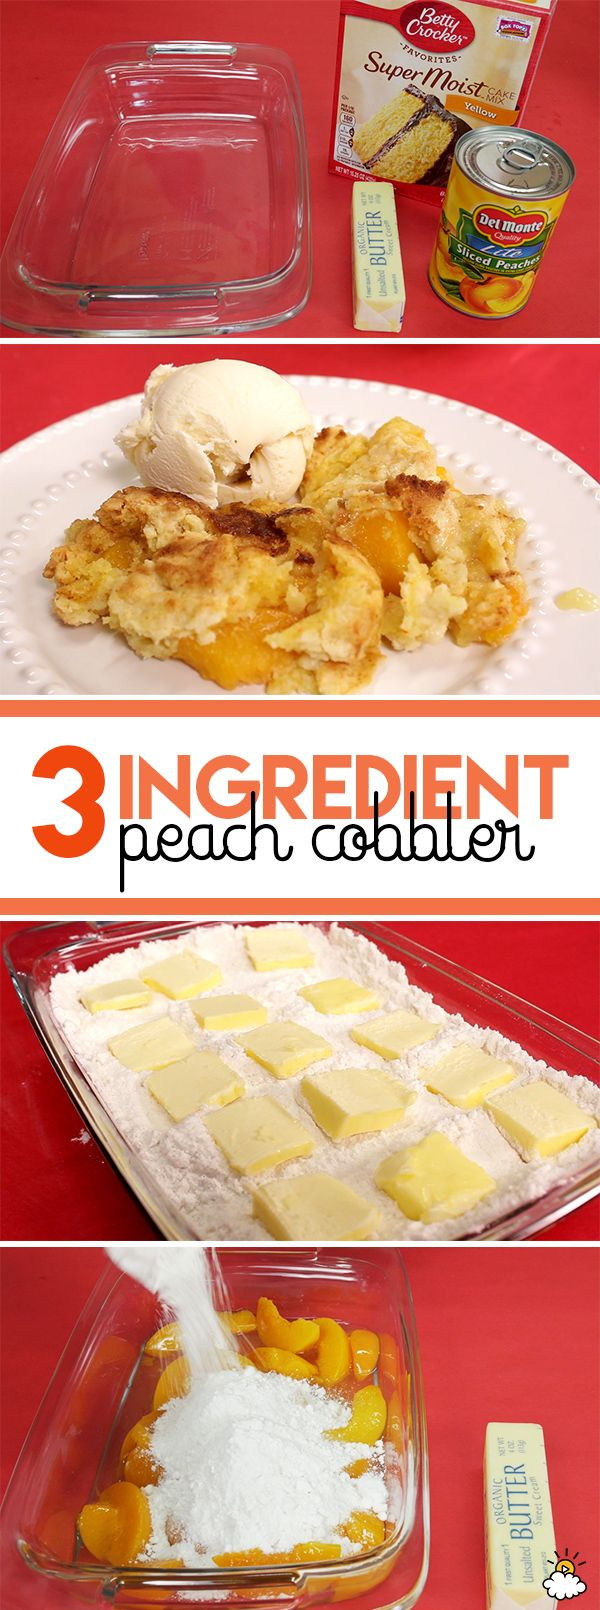 Learn how to make delicious 3-ingredient peach cobbler with just cake mix, canned peaches in syrup, and some butter. ##hisspecialty